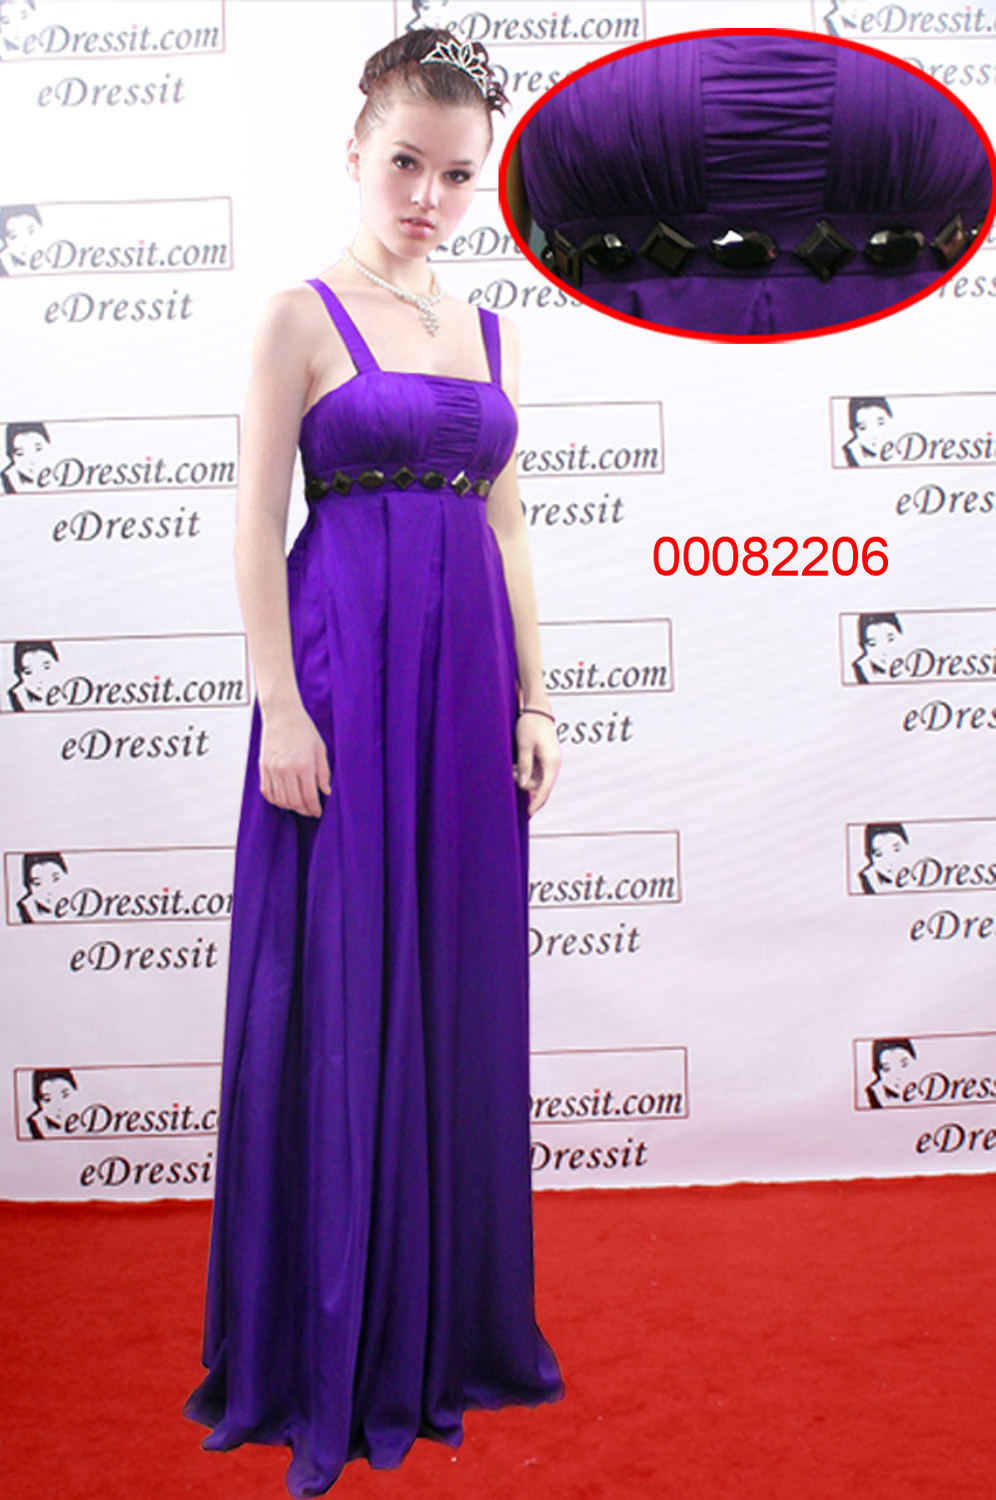 eDressit Elegant Purple Evening Dress/ Prom Gown (00082206)